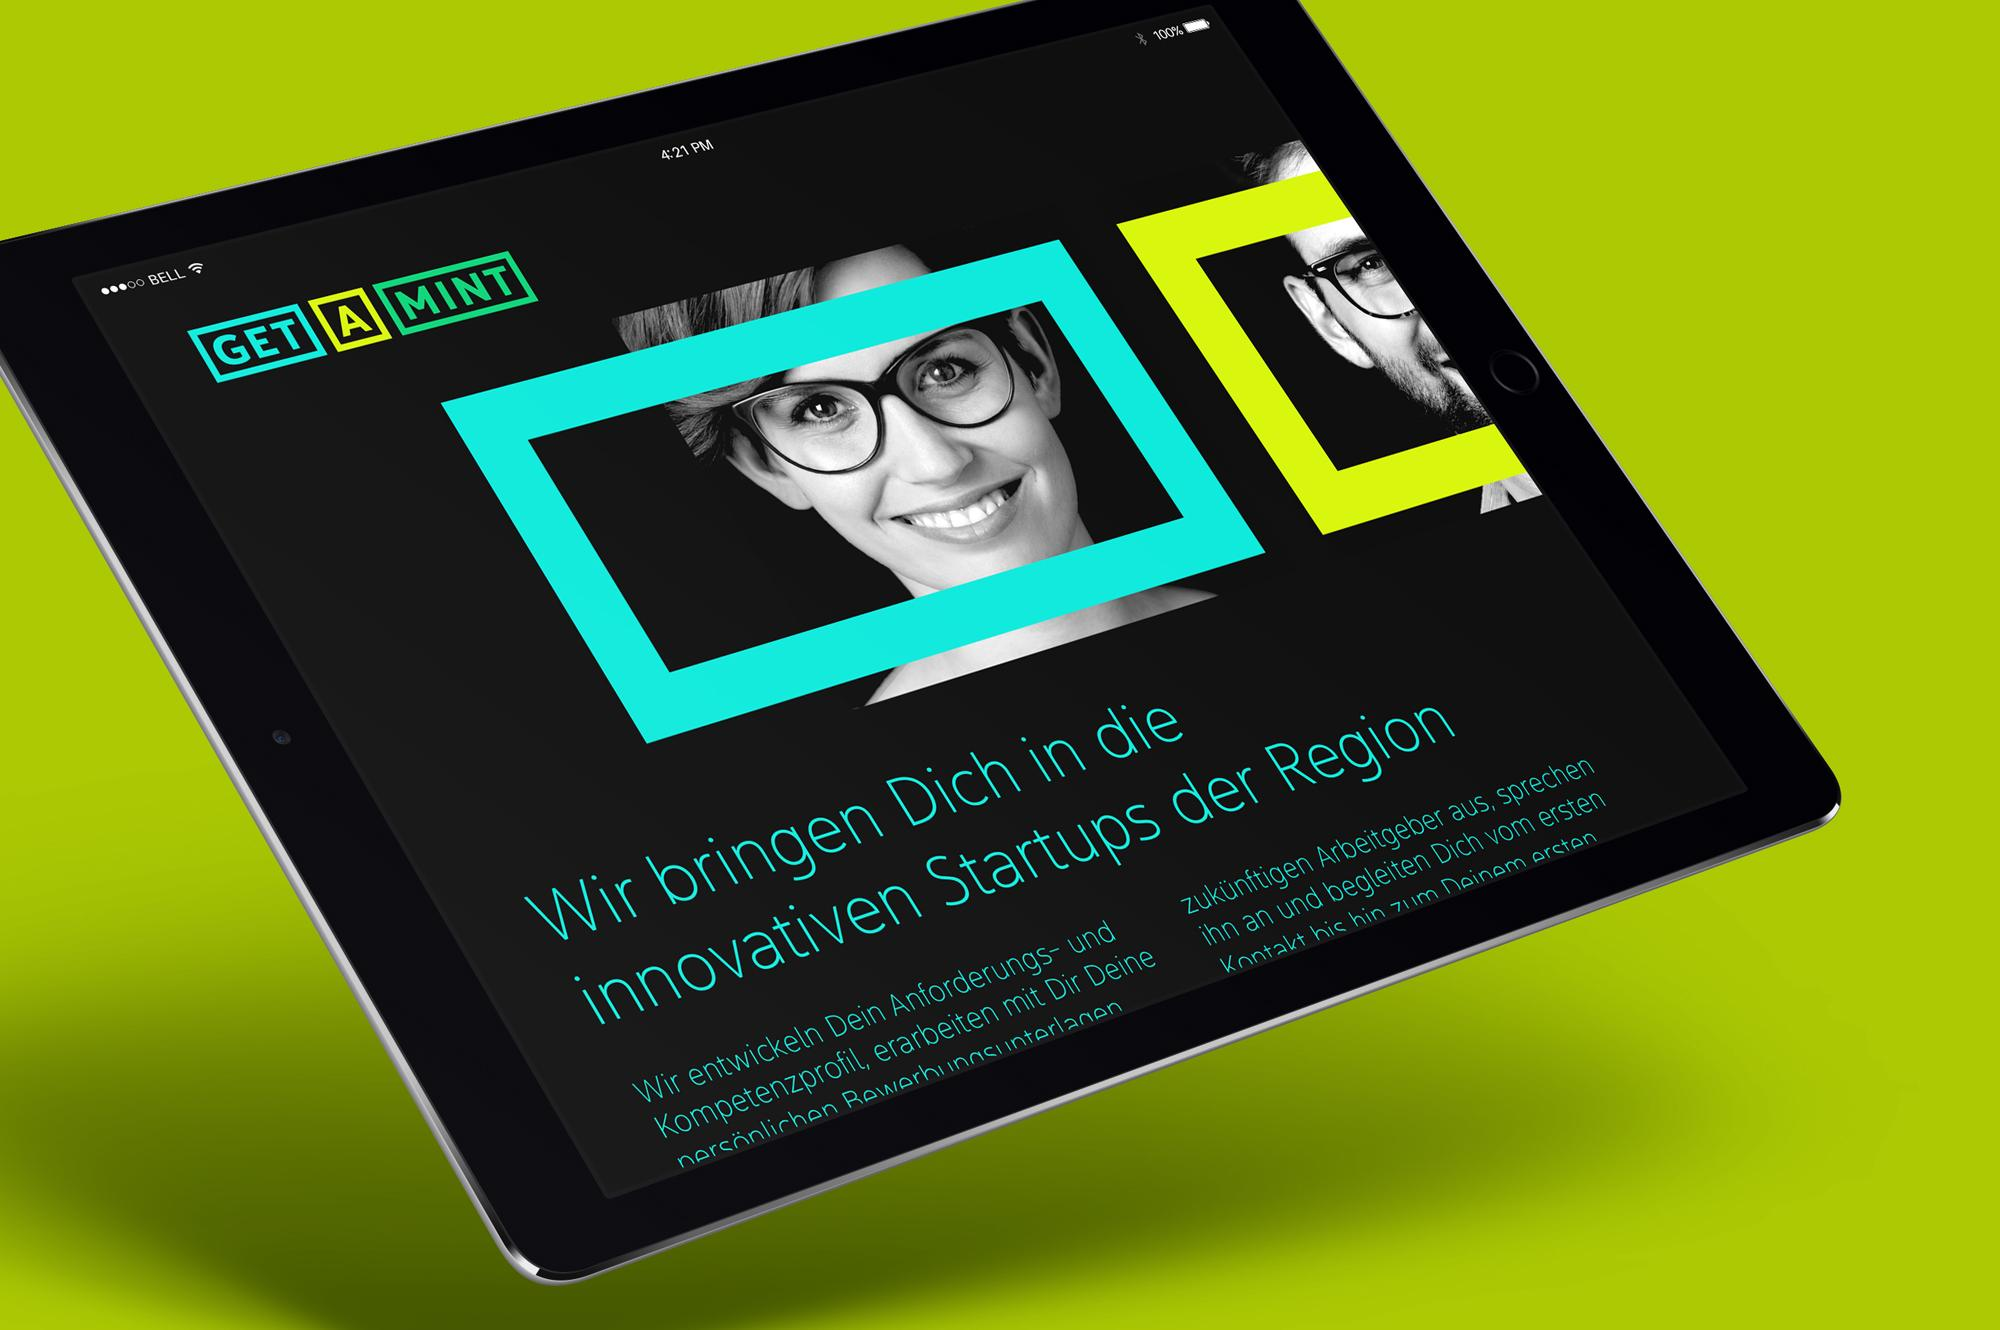 get-a-MINT-Corporate-Design-Webdesign-Website-Landing-Page.jpg